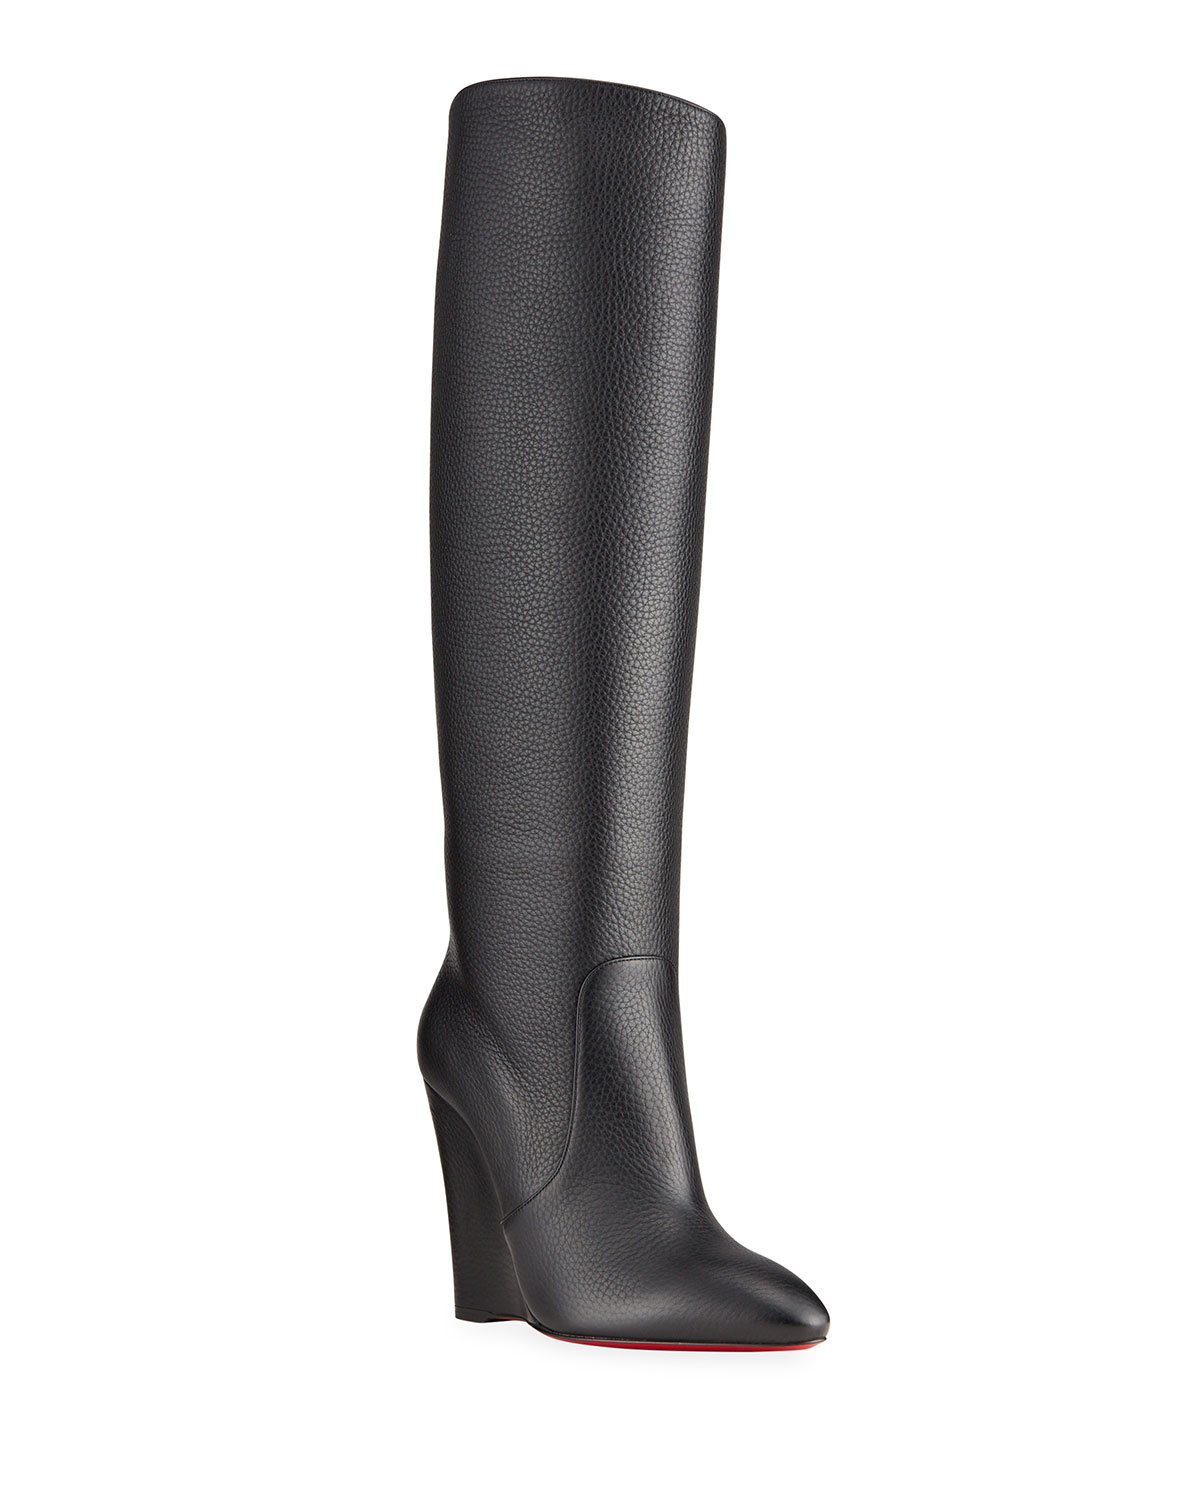 Christian Louboutin CIVILIZA TALL RED SOLE WEDGE BOOTS